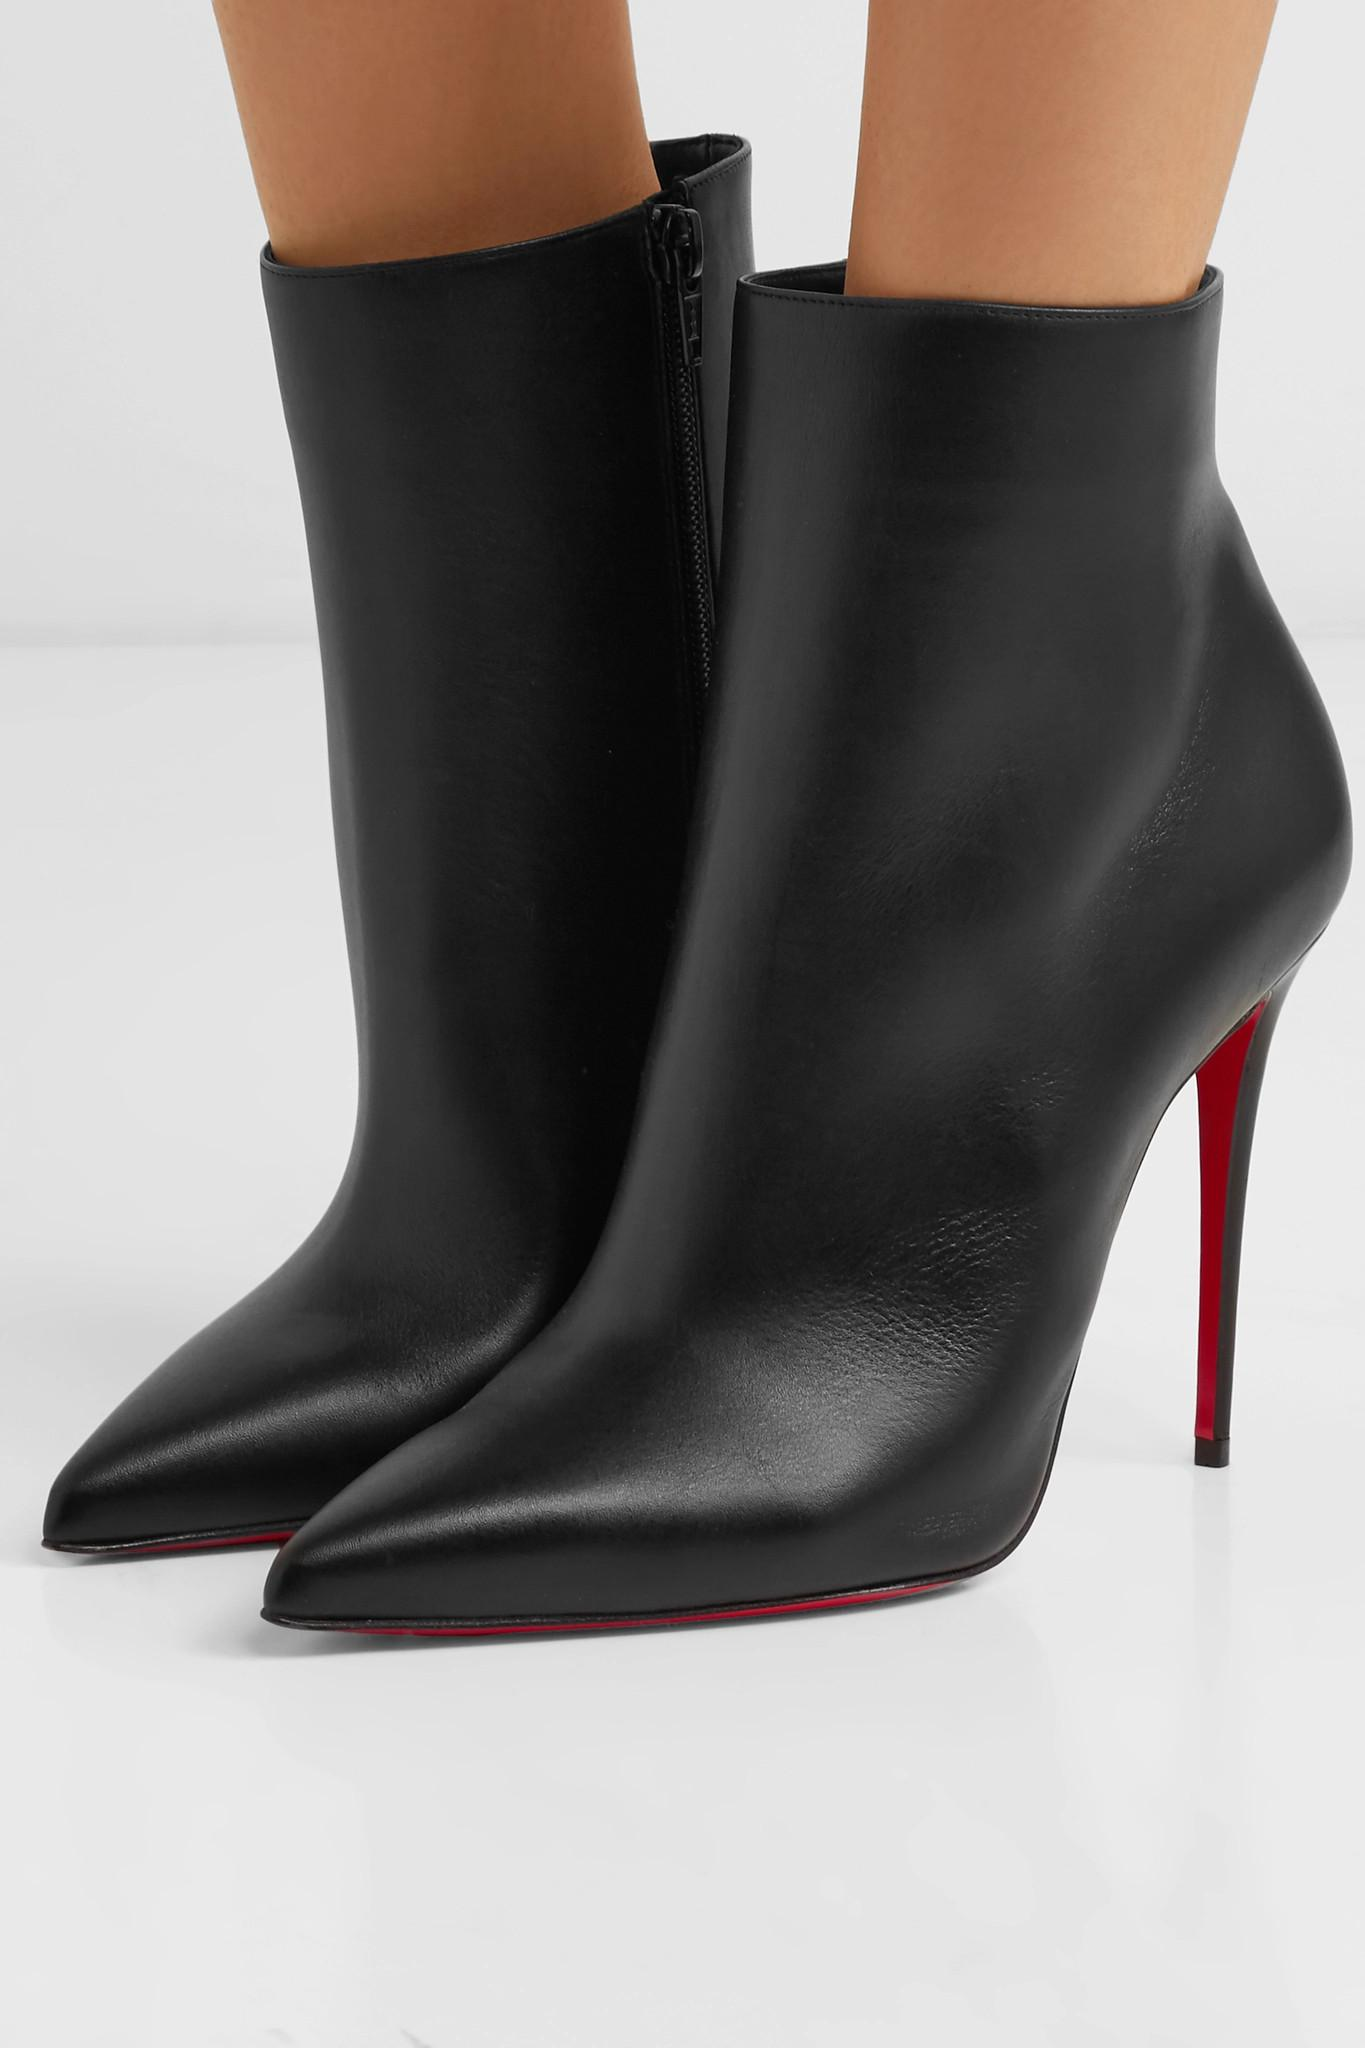 8cb4947b5756 Christian Louboutin - Black So Kate 110 Leather Ankle Boots - Lyst. View  fullscreen